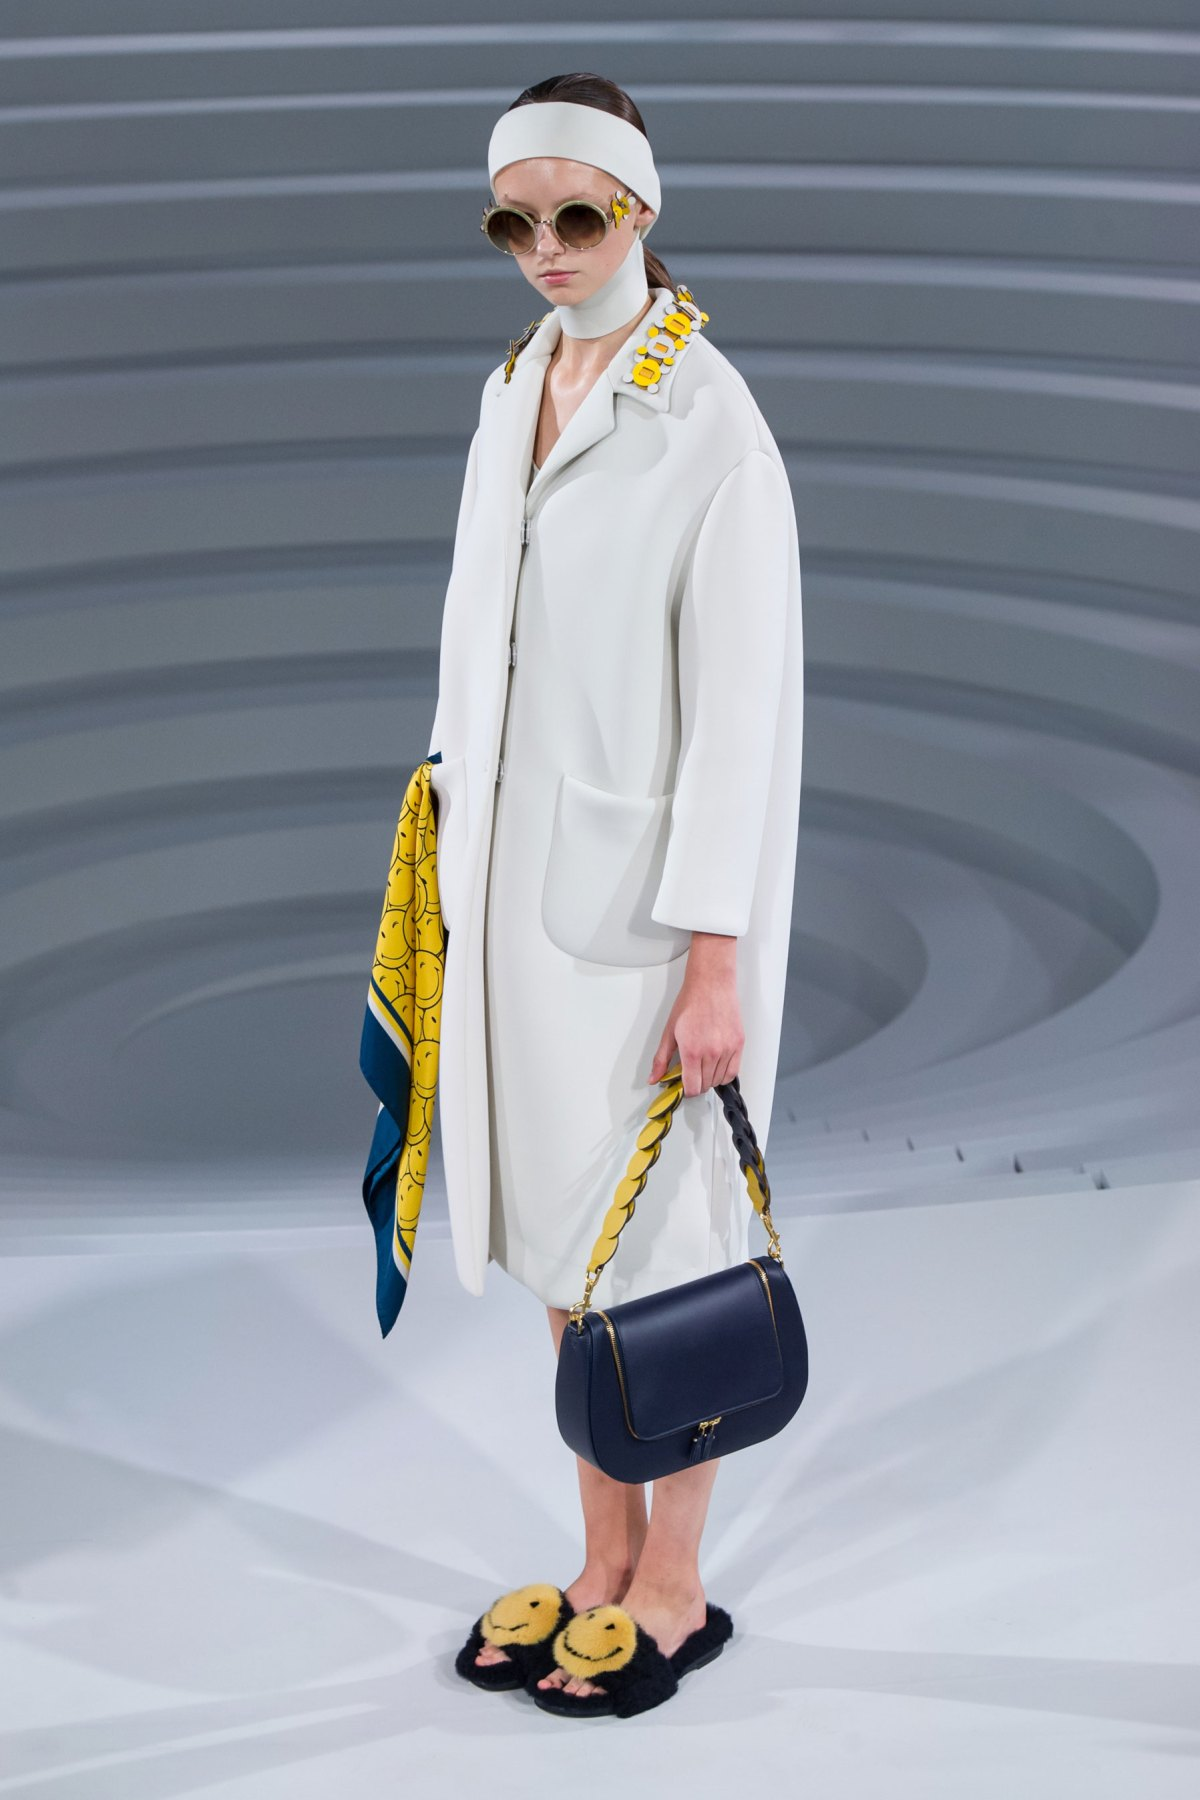 Hindmarch RS17 3213